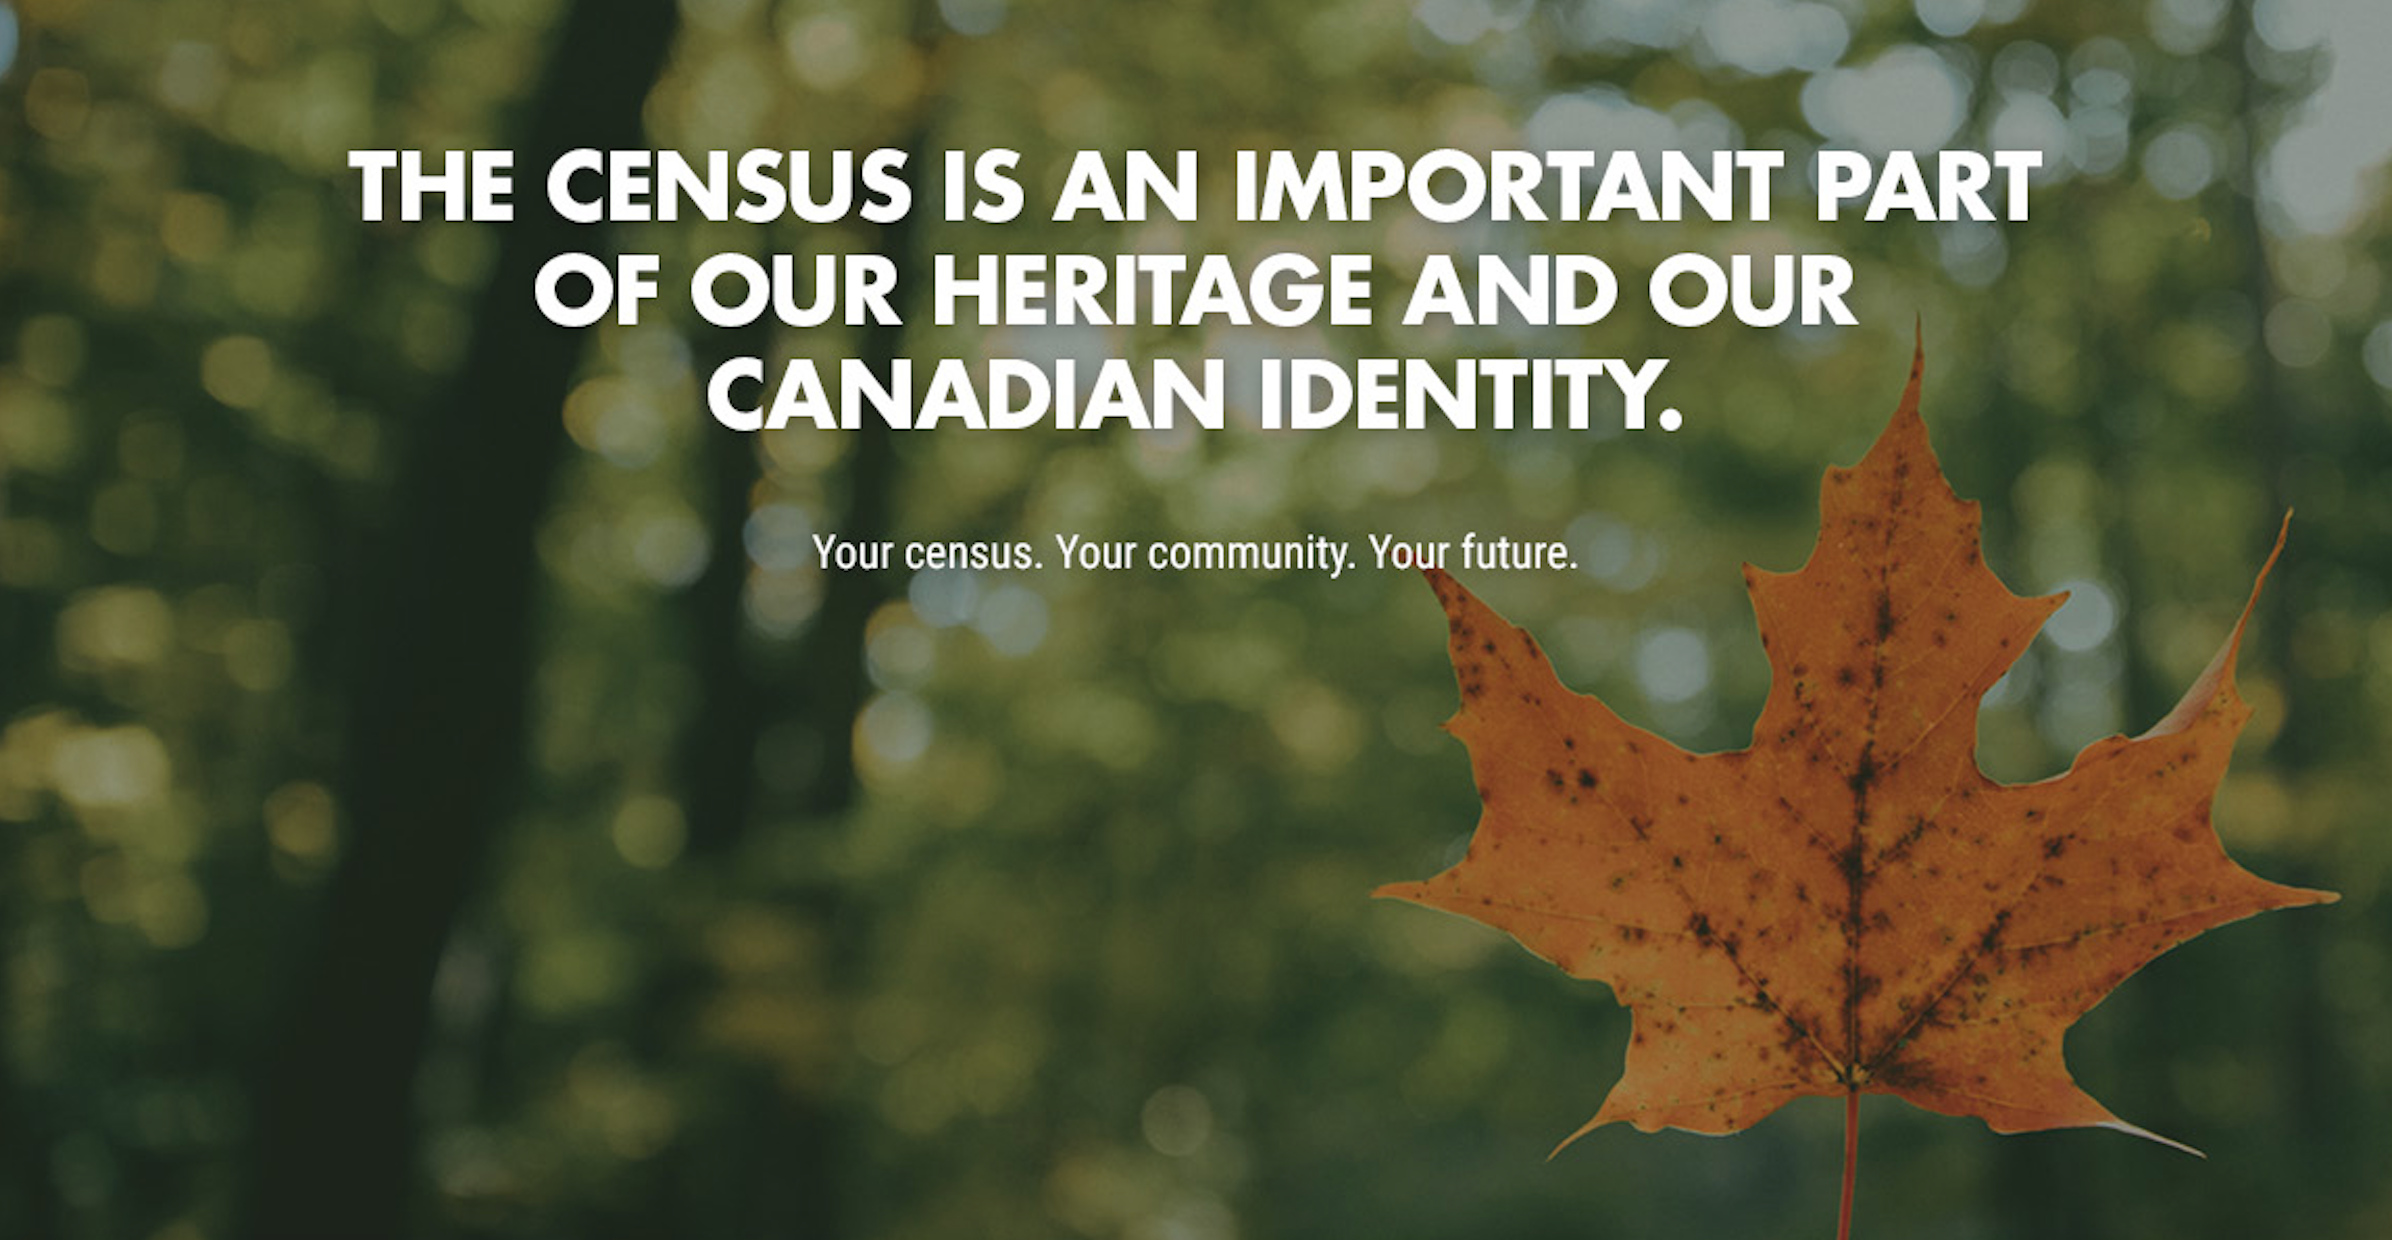 Collection for the 2021 Census begins today!